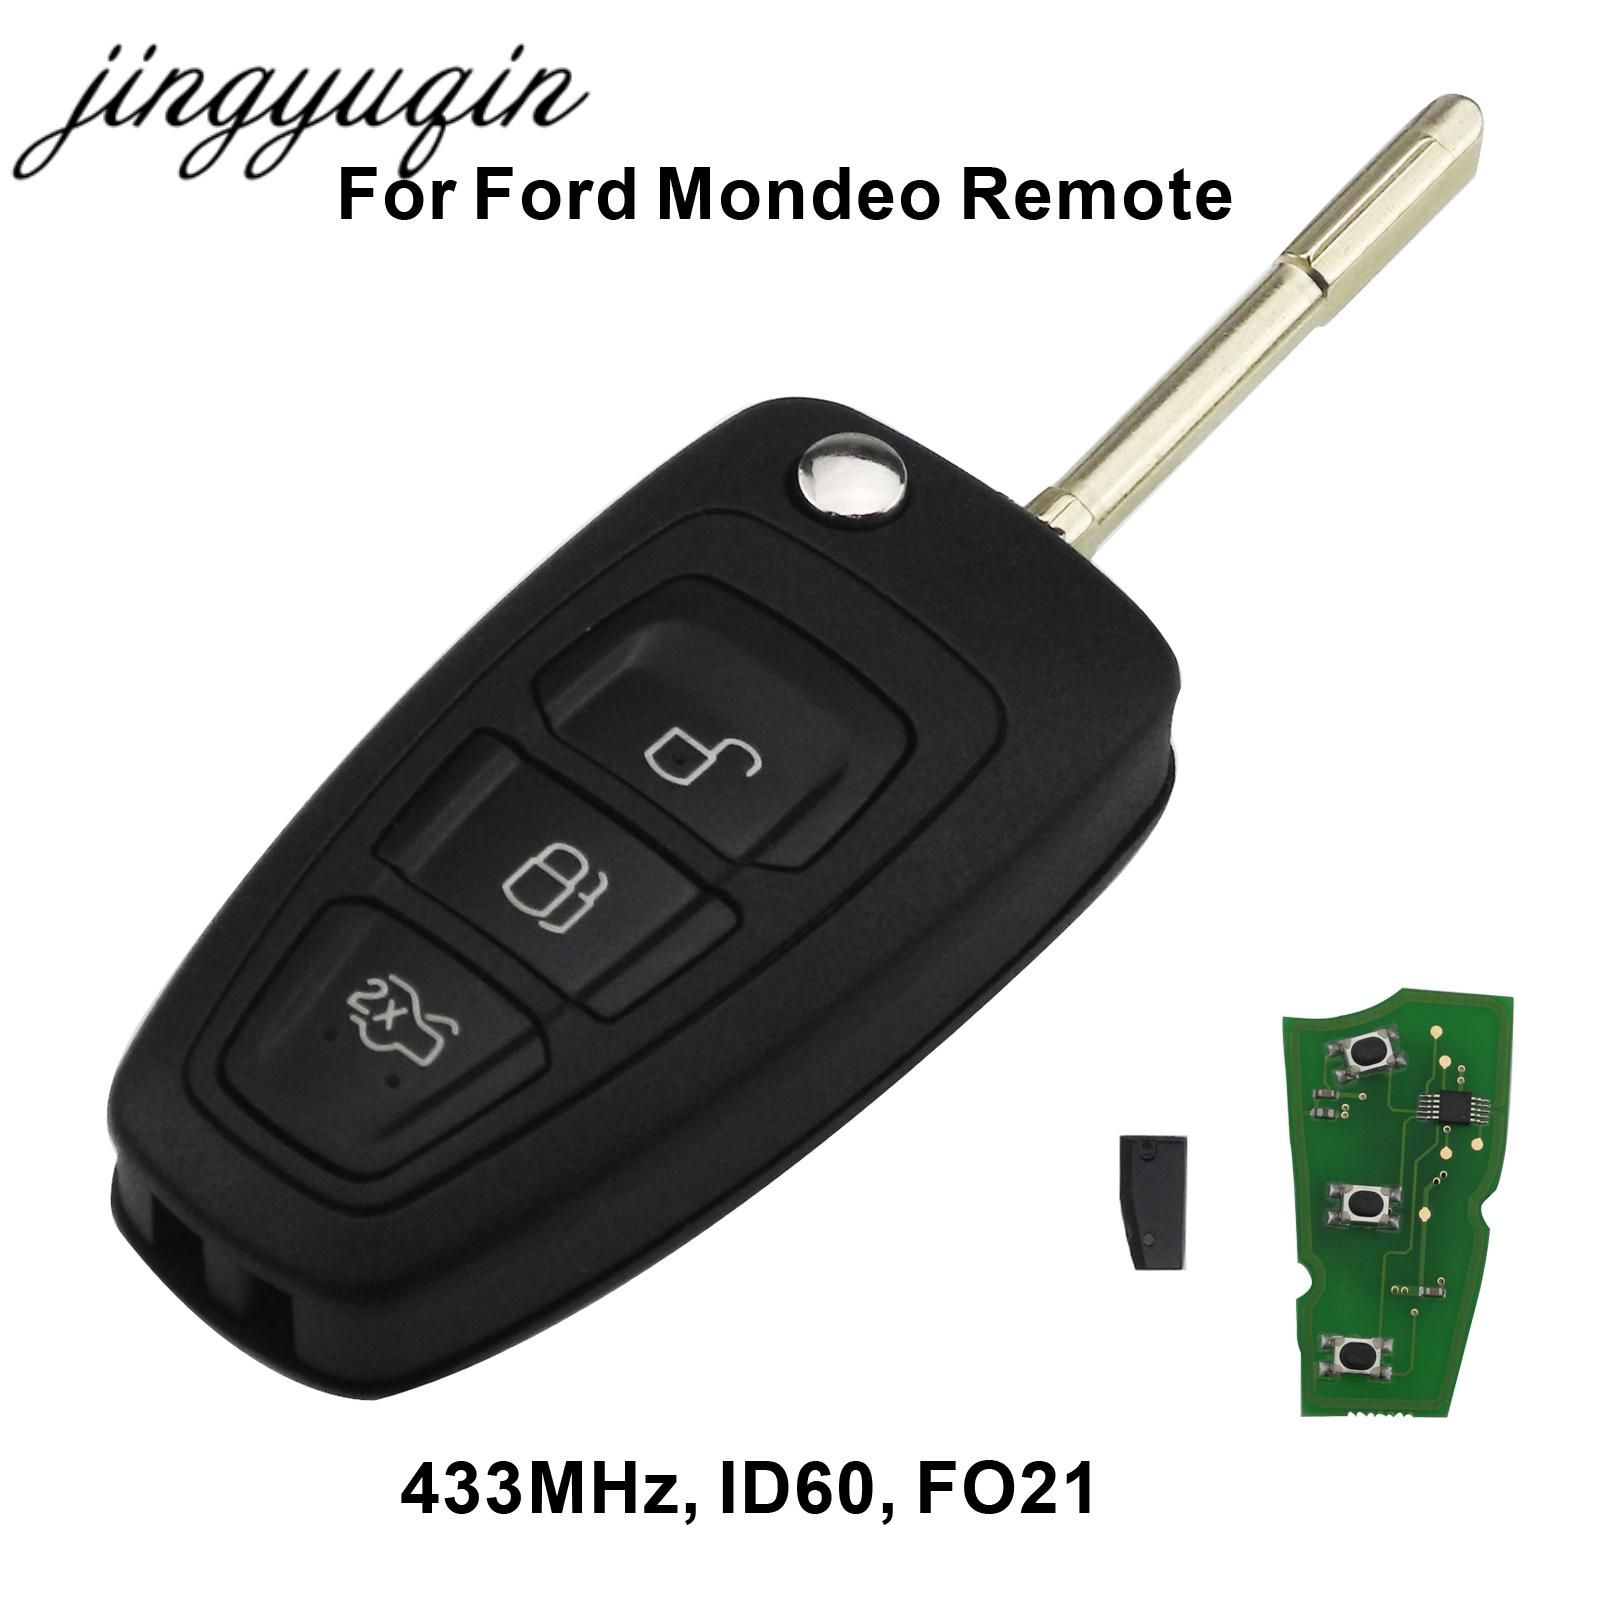 Jingyuqin 3 Buttons Flip Remote Key Fob Chip 4d60 Id63 For Ford Focus Mk1 Mondeo Transit Connect 433mhz Key Fob Remote Ford Mondeo